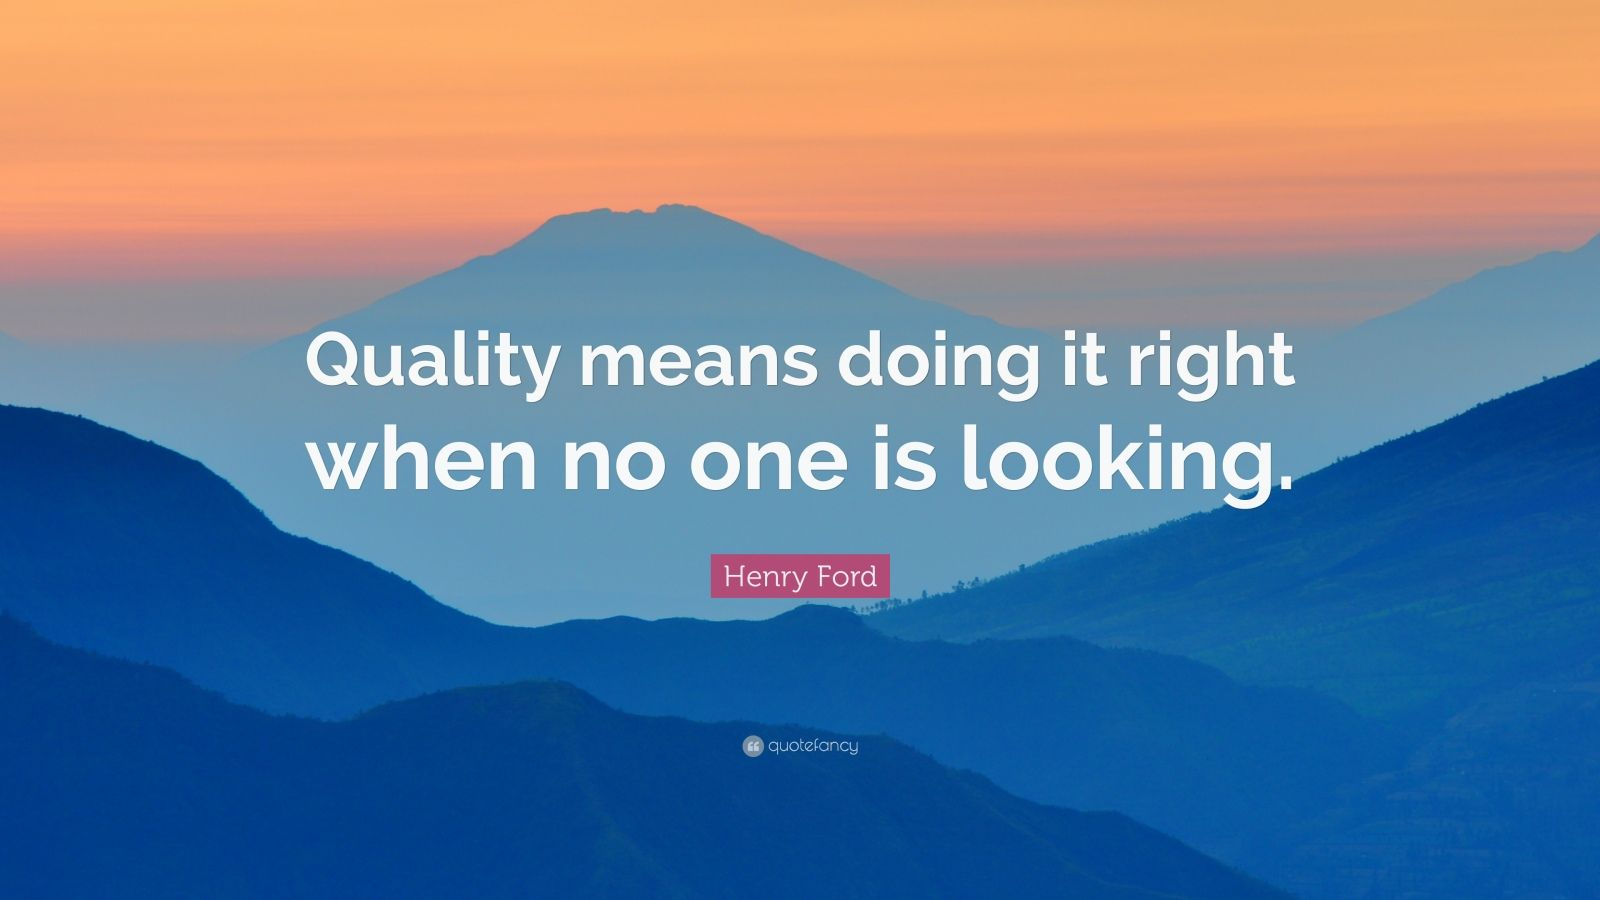 Elon Musk Quotes Wallpaper Henry Ford Quote Quality Means Doing It Right When No